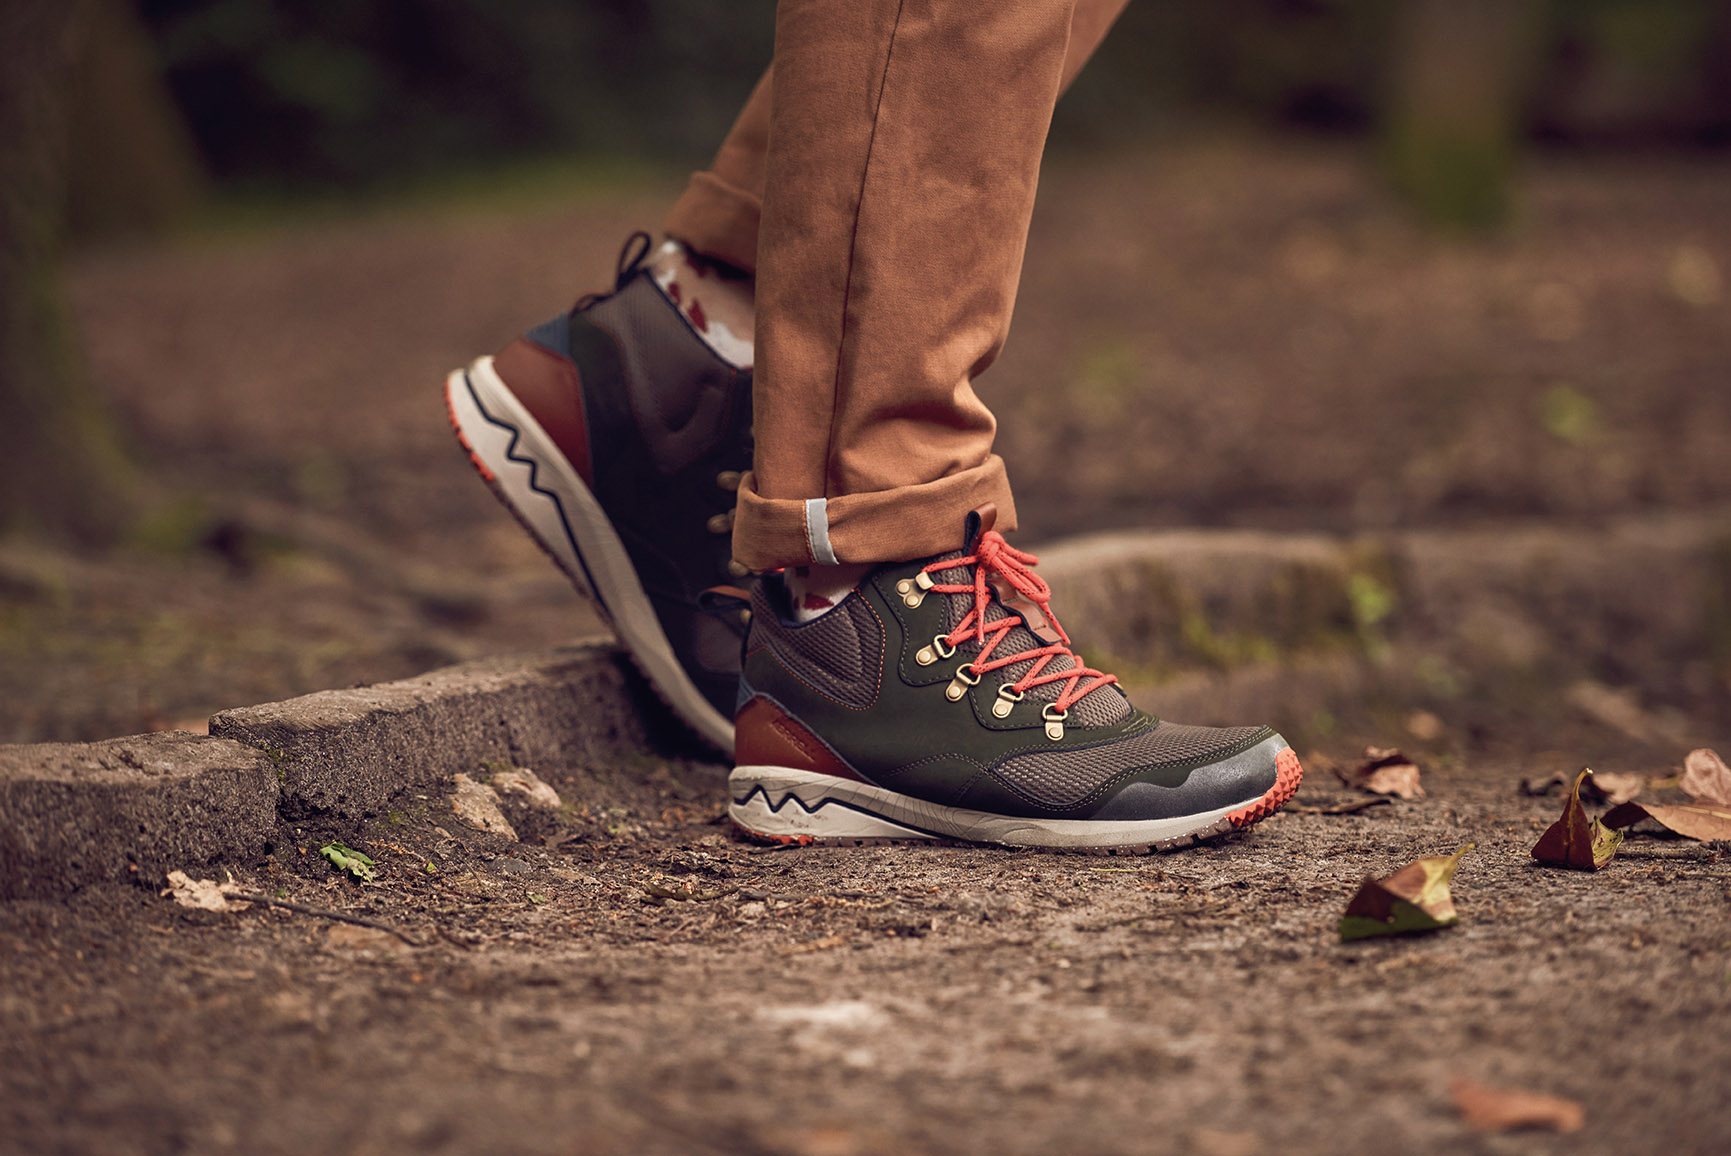 Merrell's new Heritage Collection